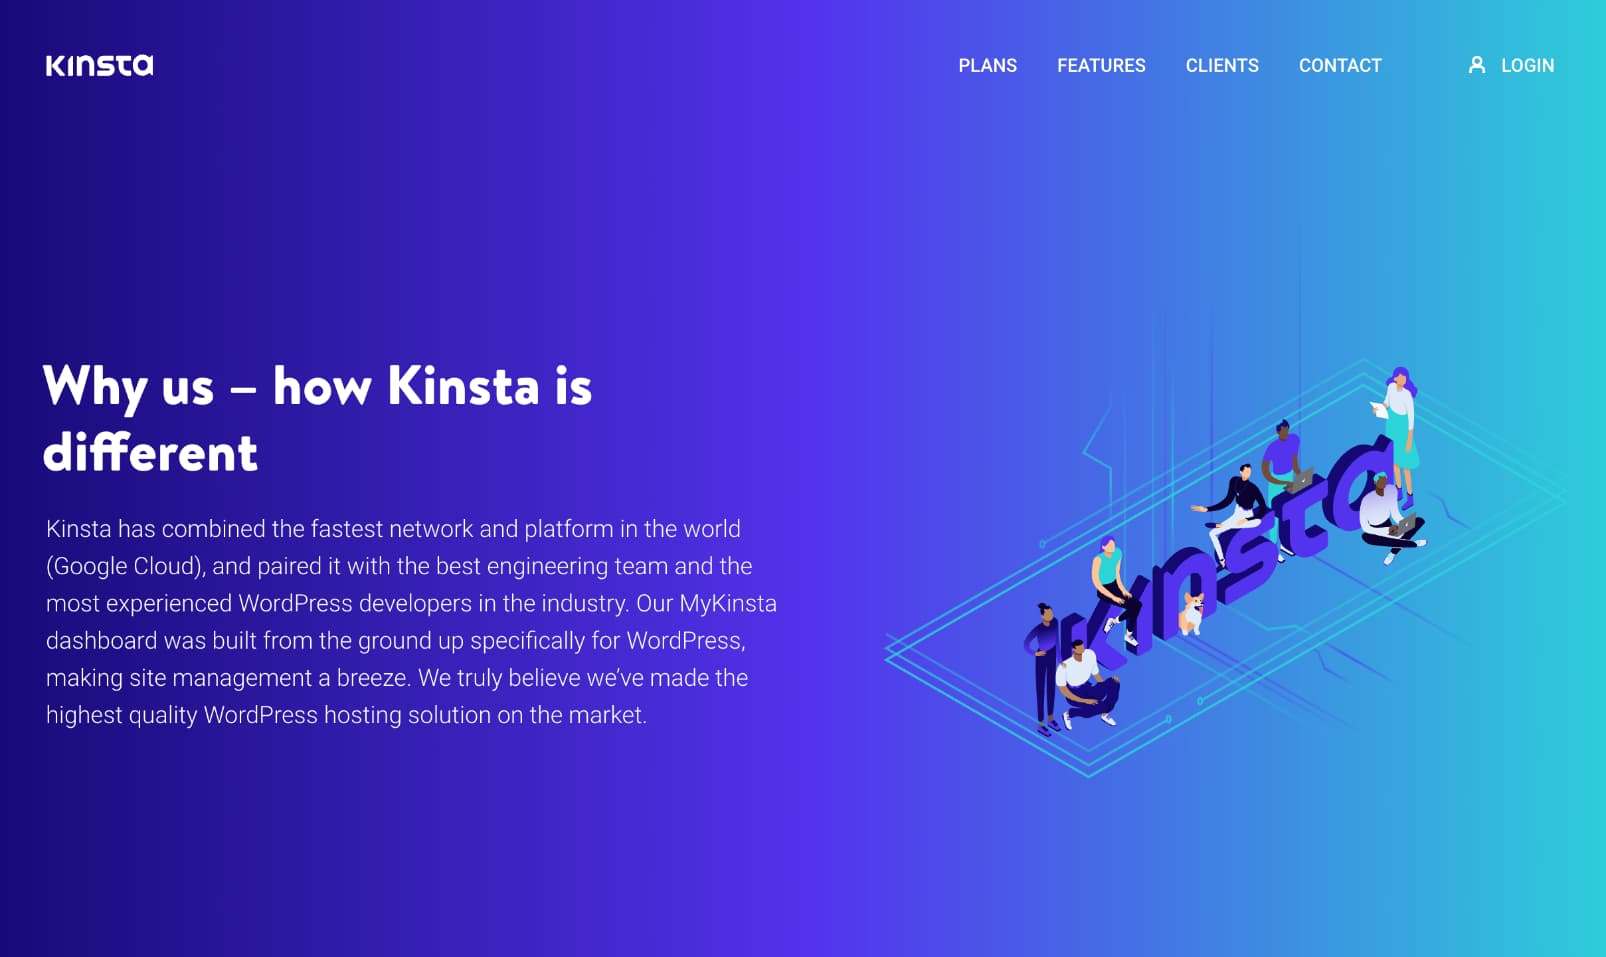 How Kinsta is Different